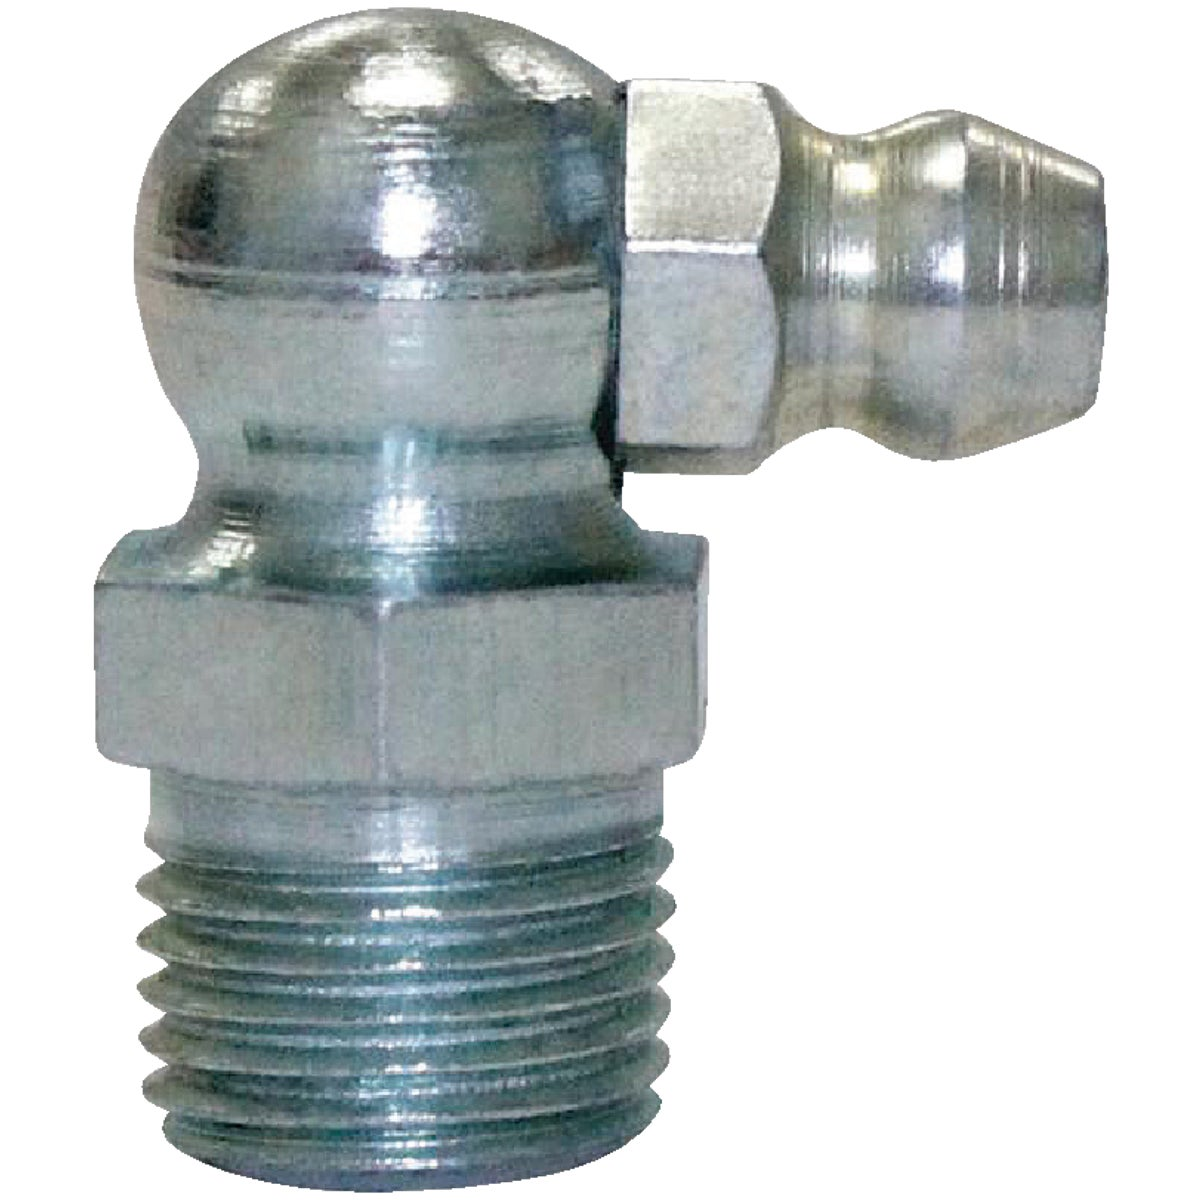 Plews LubriMatic Grease Fitting, 11-167